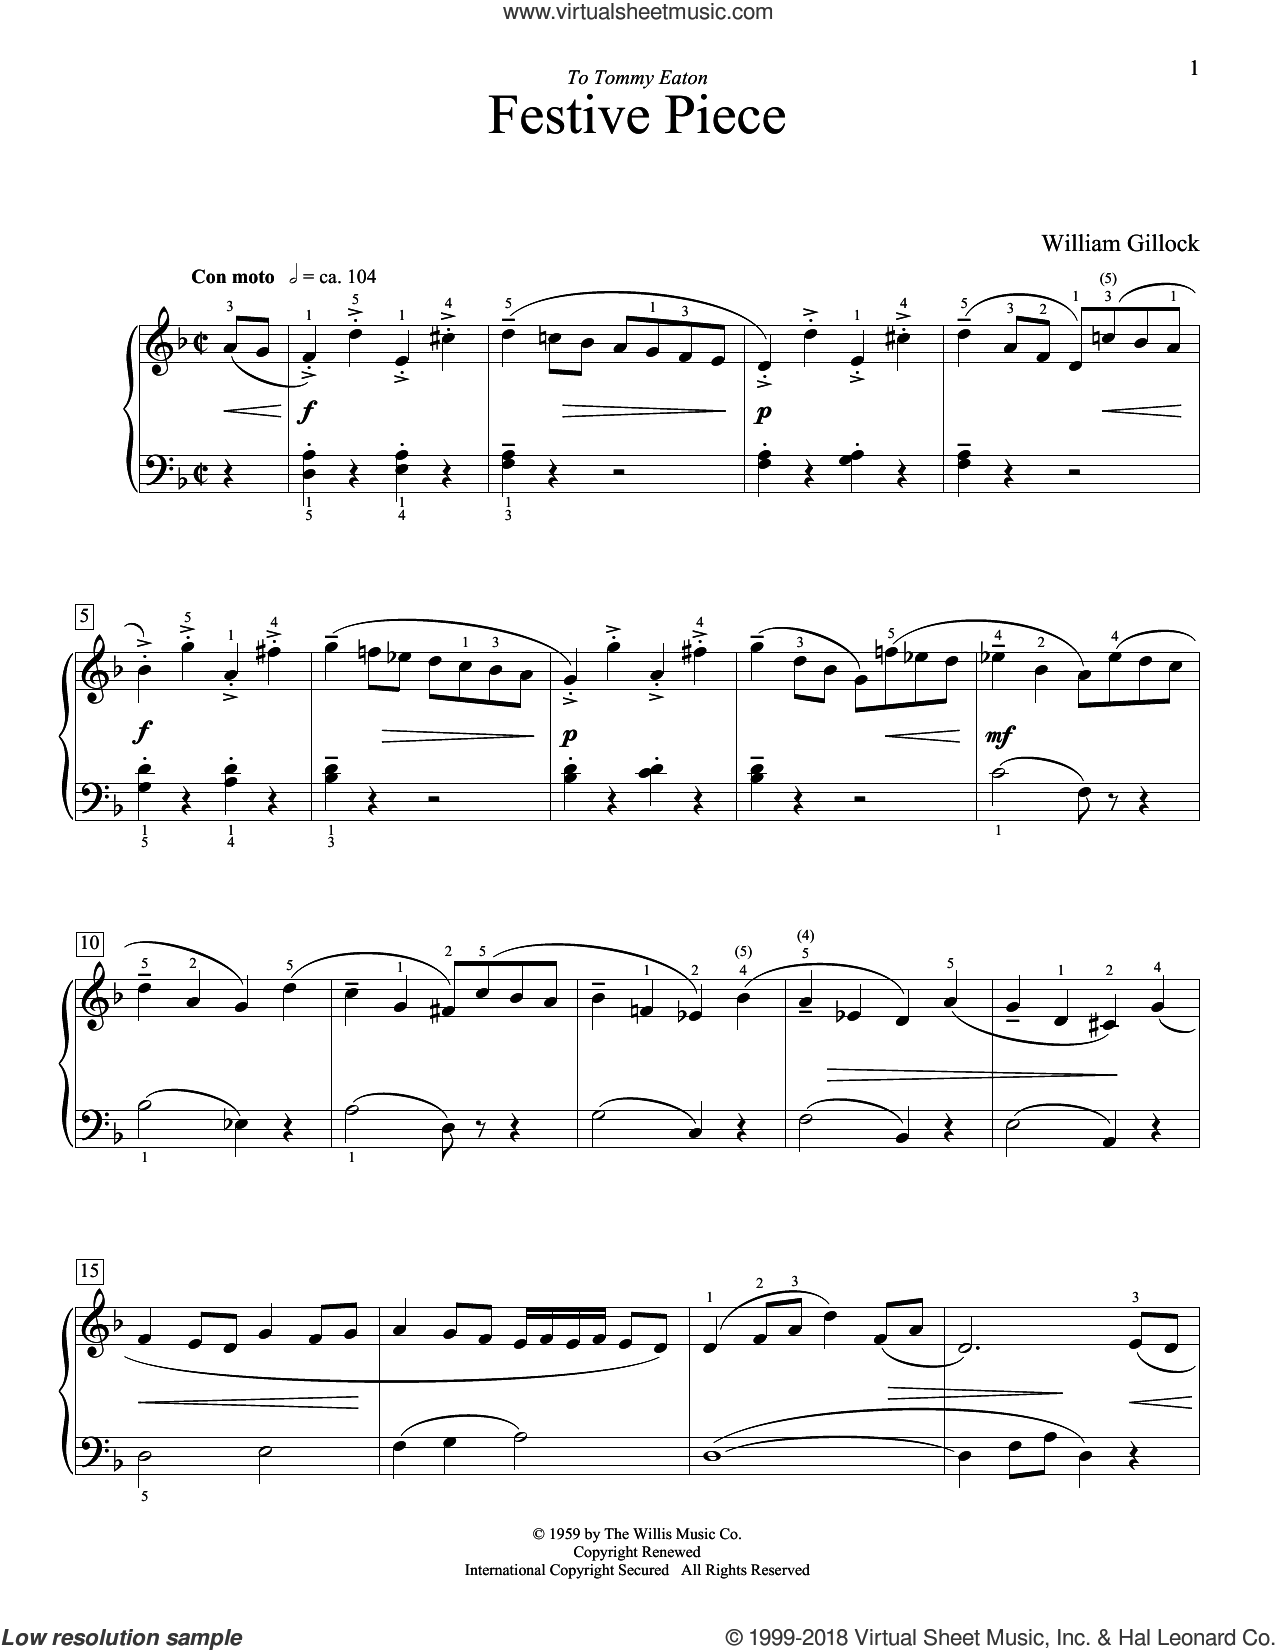 Festive Piece sheet music for piano solo (elementary) by William Gillock